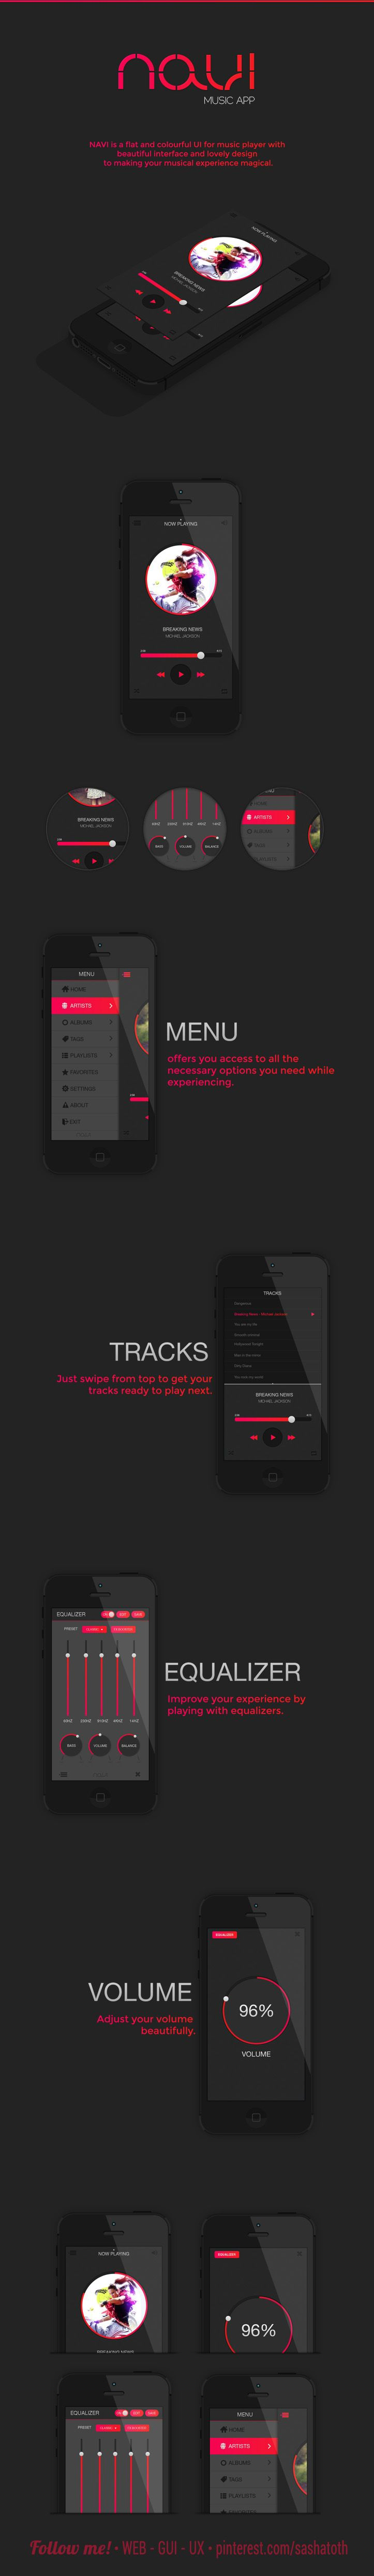 NAVI - Music App | NAVI is a flat and colourful UI for music player with  beautiful interface and lovely design  to making your musical experience magical. | Designer: Mansoor MJ